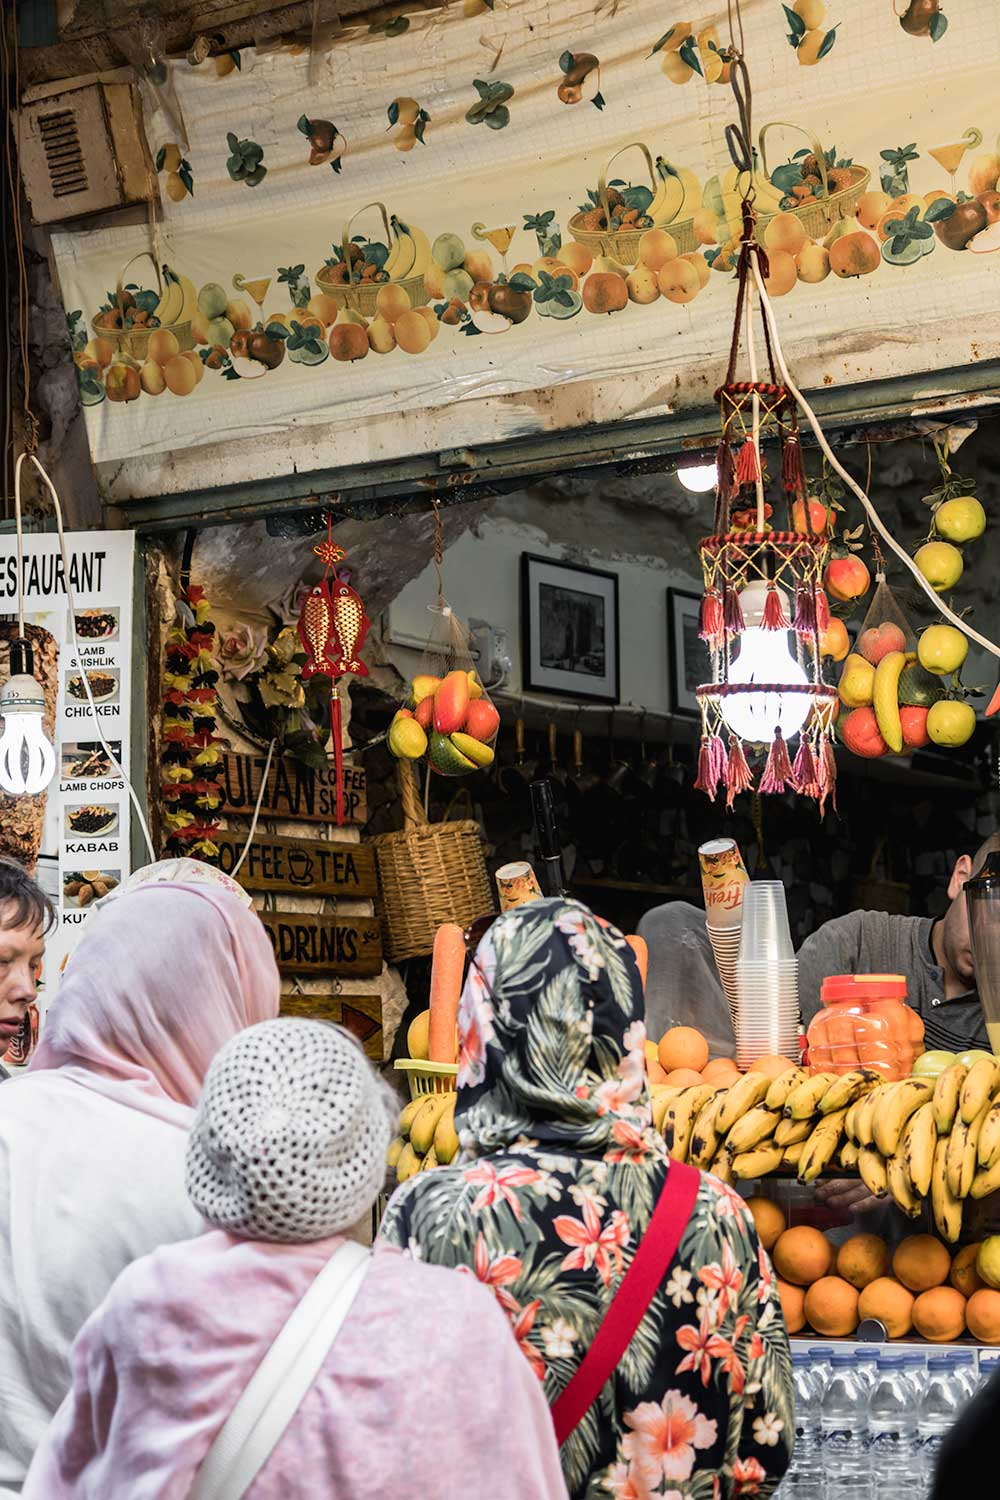 Delicious fruit juices are plenty available while exploring the Arab Market in the Muslim Quarter